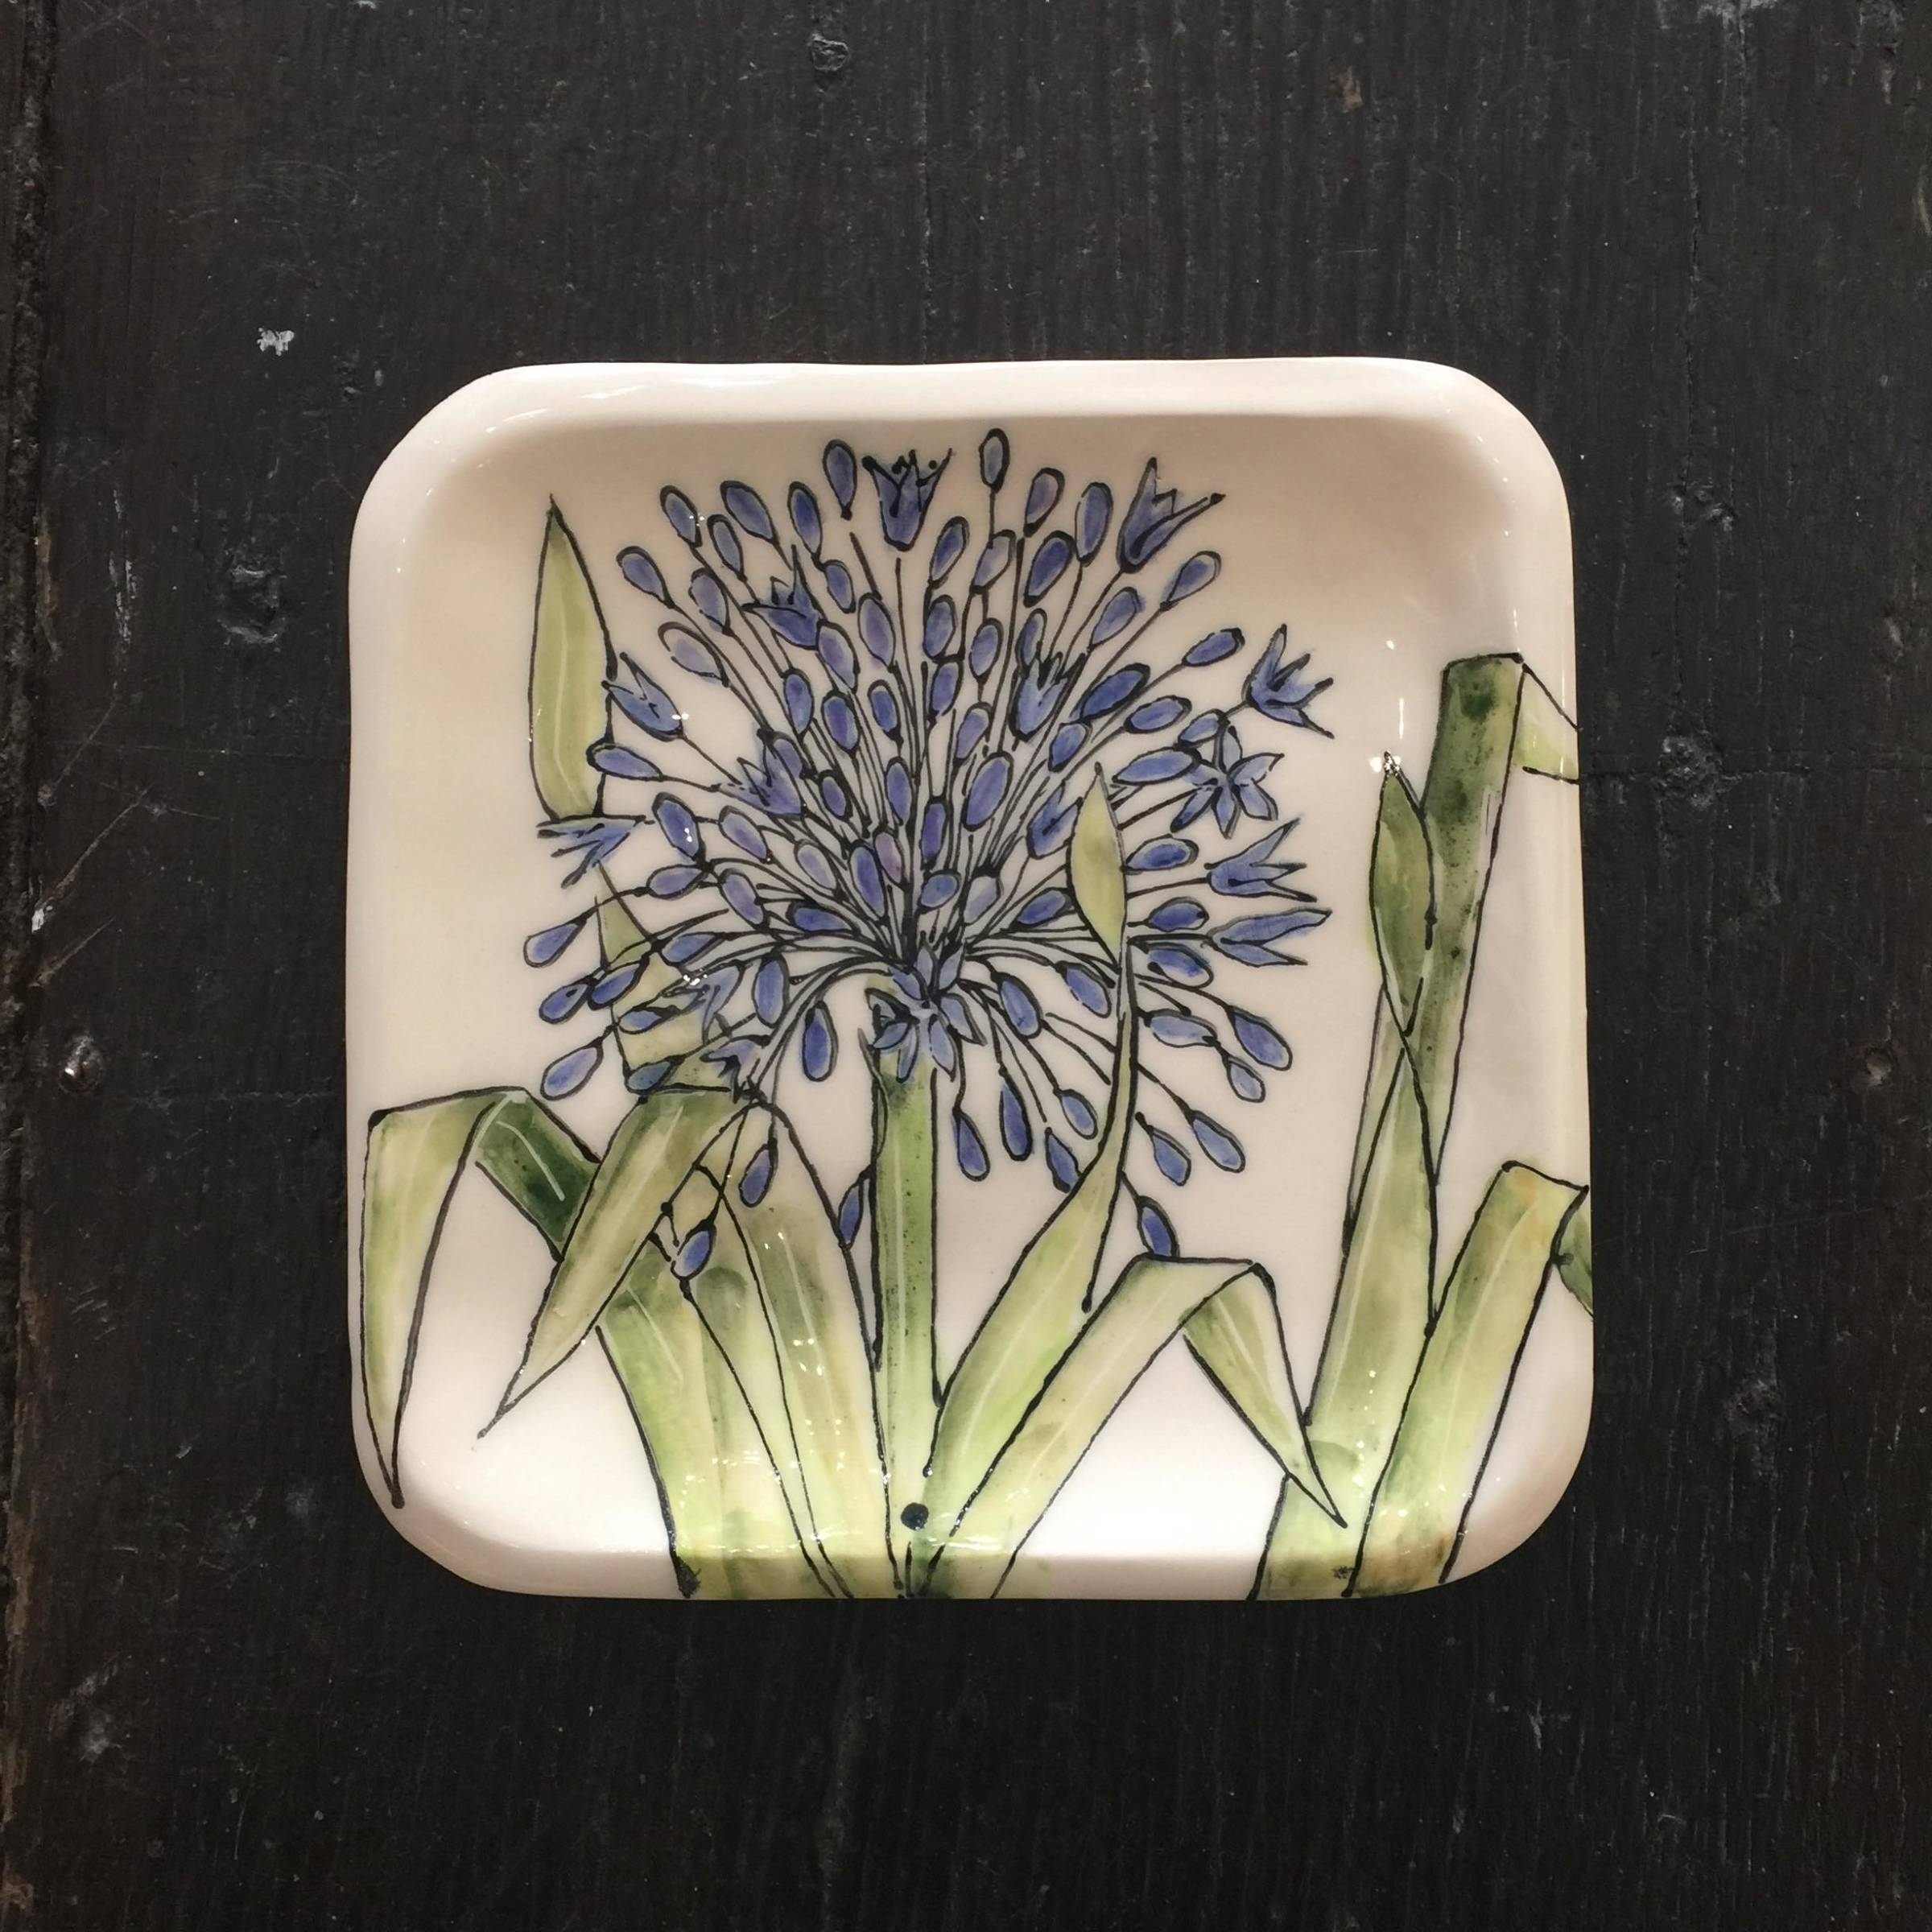 <span class=&#34;link fancybox-details-link&#34;><a href=&#34;/artists/33-kerry-edwards/works/2390-kerry-edwards-small-agapanthus-dish/&#34;>View Detail Page</a></span><div class=&#34;artist&#34;><strong>Kerry Edwards</strong></div> <div class=&#34;title&#34;><em>Small Agapanthus Dish</em></div> <div class=&#34;medium&#34;>Ceramic</div> <div class=&#34;dimensions&#34;>16 x 16 cm</div><div class=&#34;price&#34;>£45.00</div><div class=&#34;copyright_line&#34;>Copyright The Artist</div>